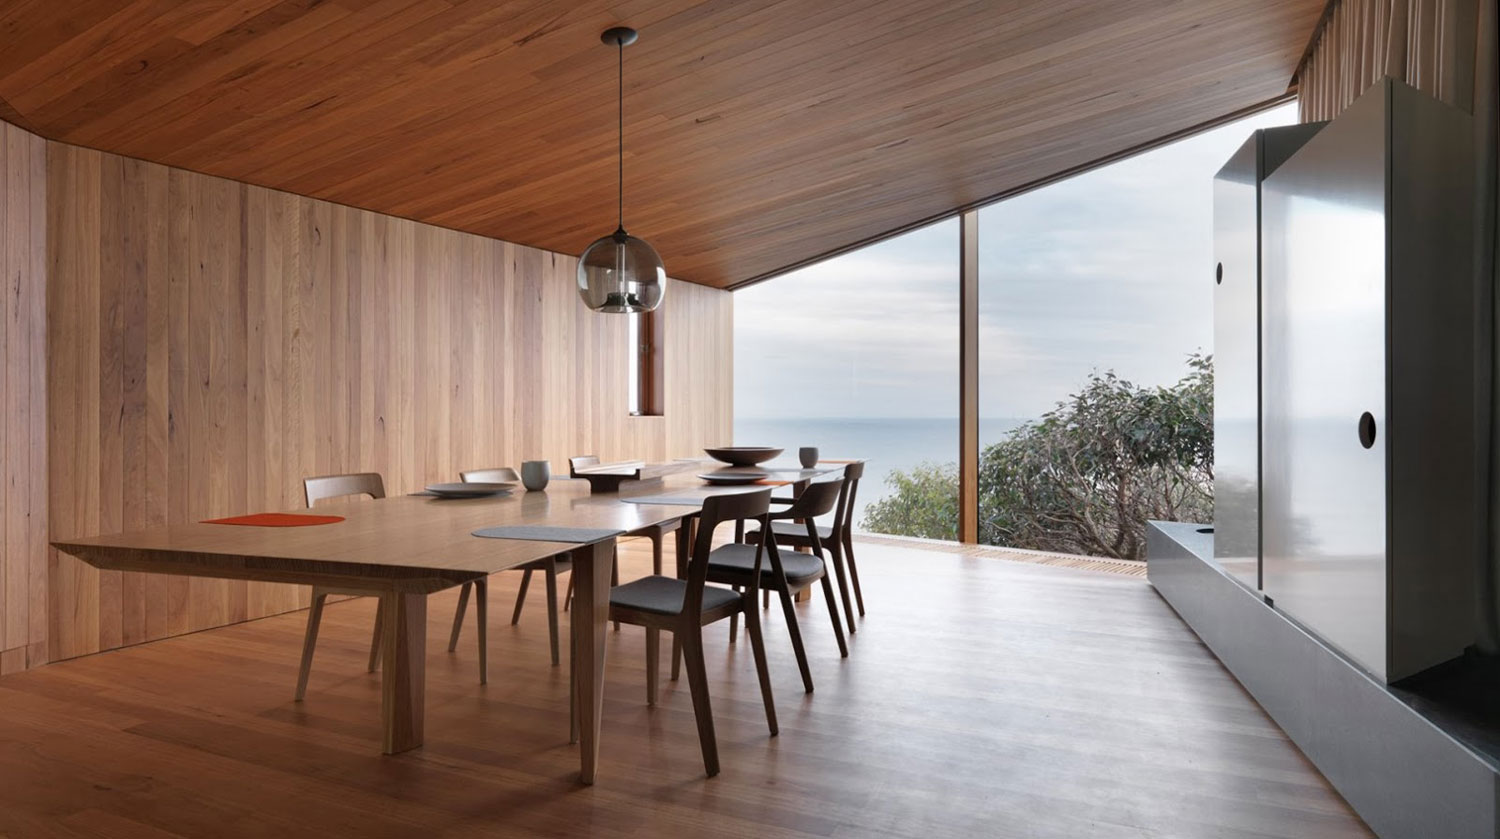 Video // Fairhaven Beach House by John Wardle Architects.